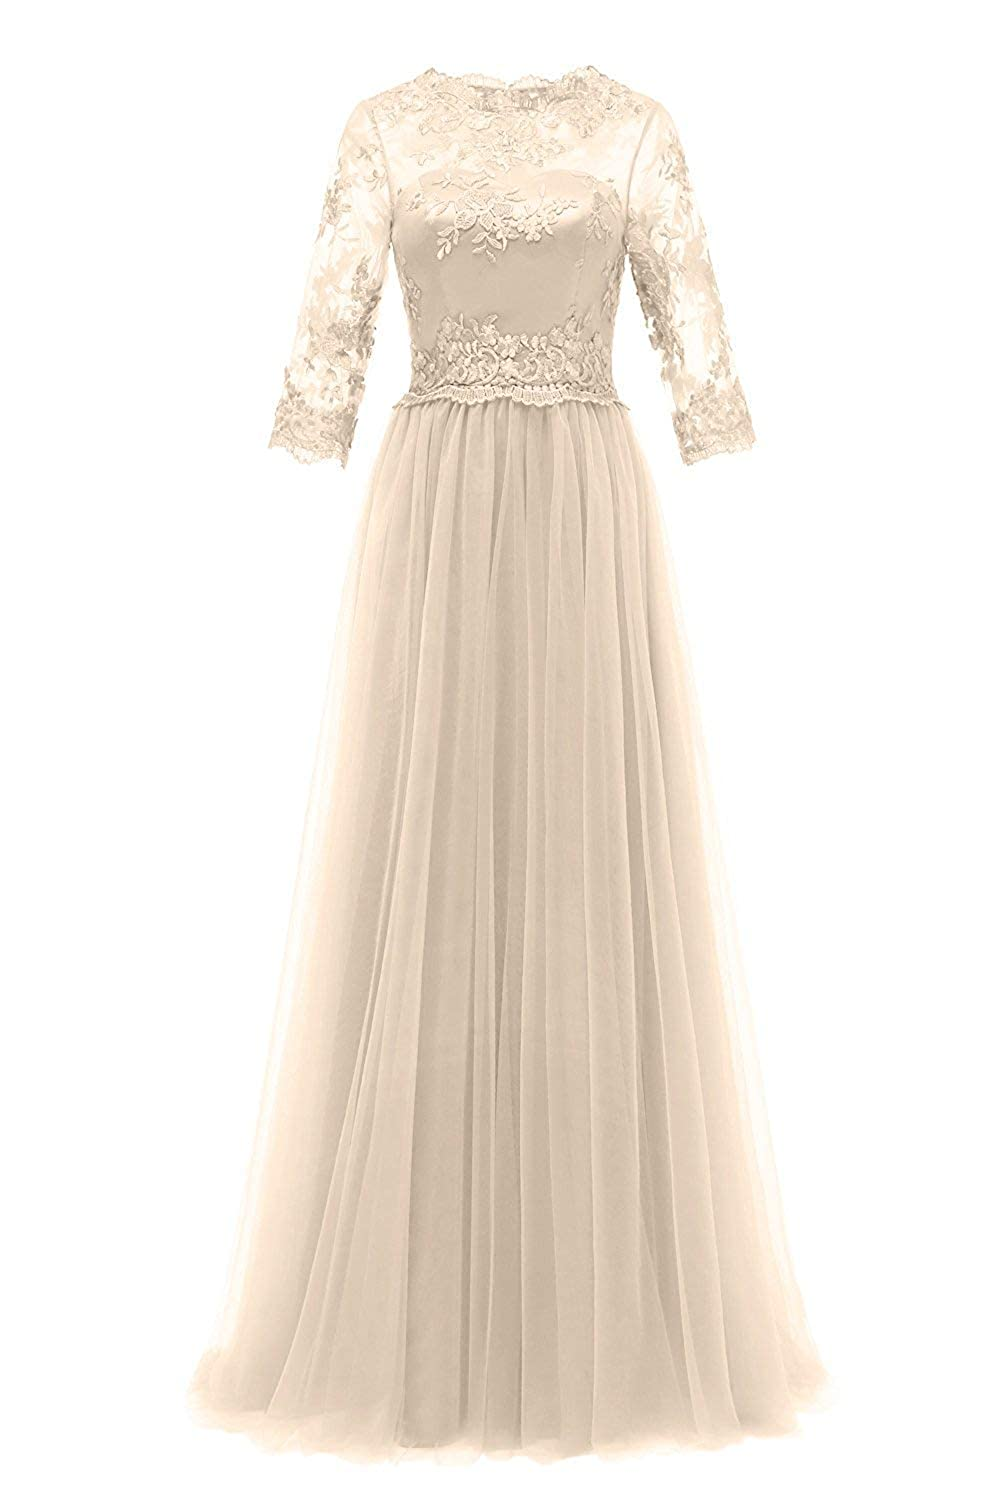 Champagen Evening Dresses Long Sleeve Lace Formal Prom Gowns Mother of The Bride Dress